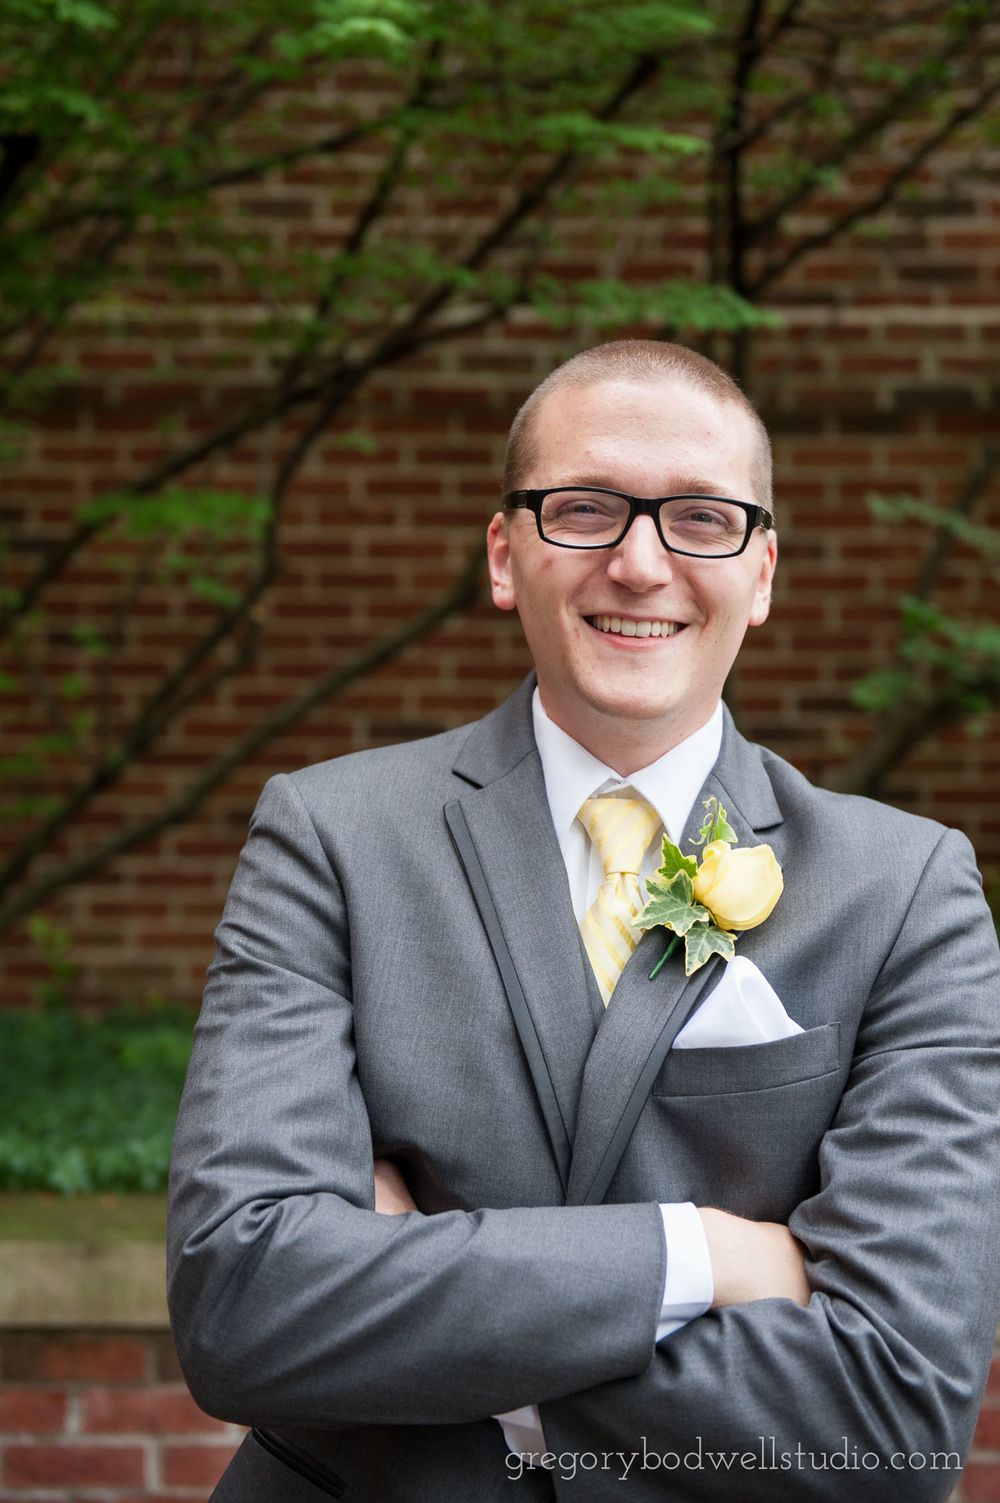 Monnin_Wedding_Athens_Ohio_Photographer_006.jpg